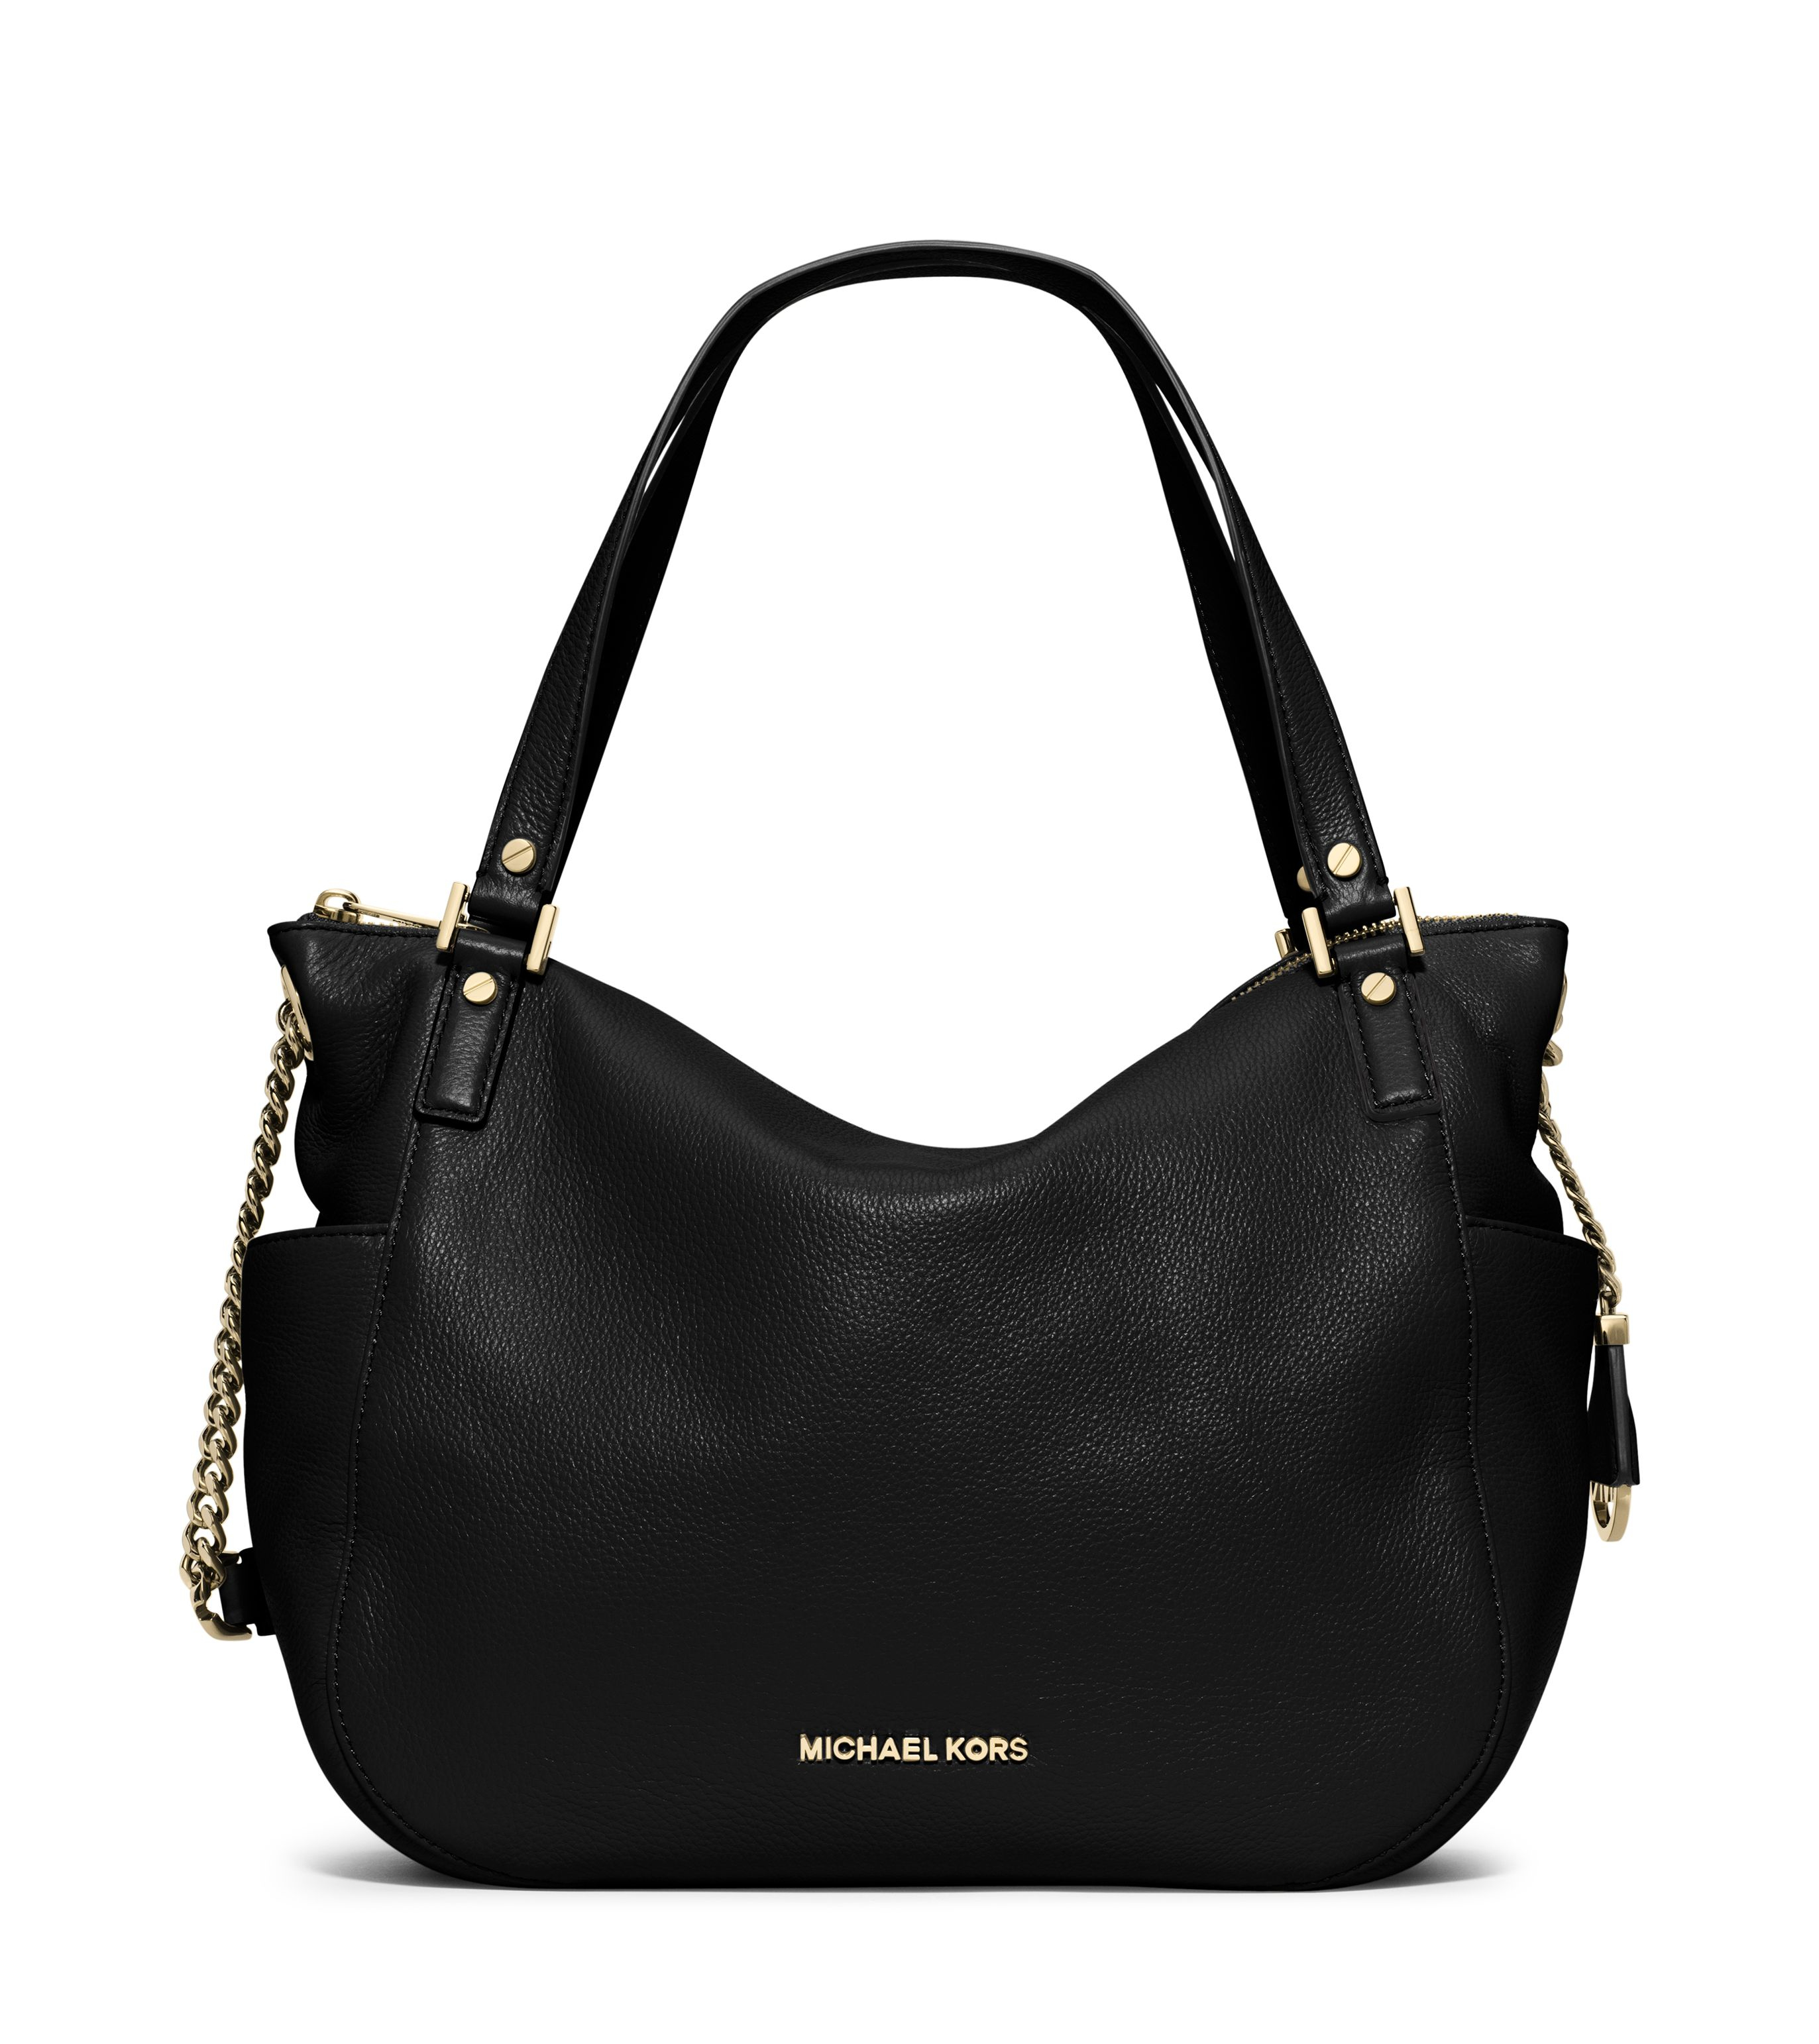 michael kors chandler black chain hobo bag in black lyst. Black Bedroom Furniture Sets. Home Design Ideas